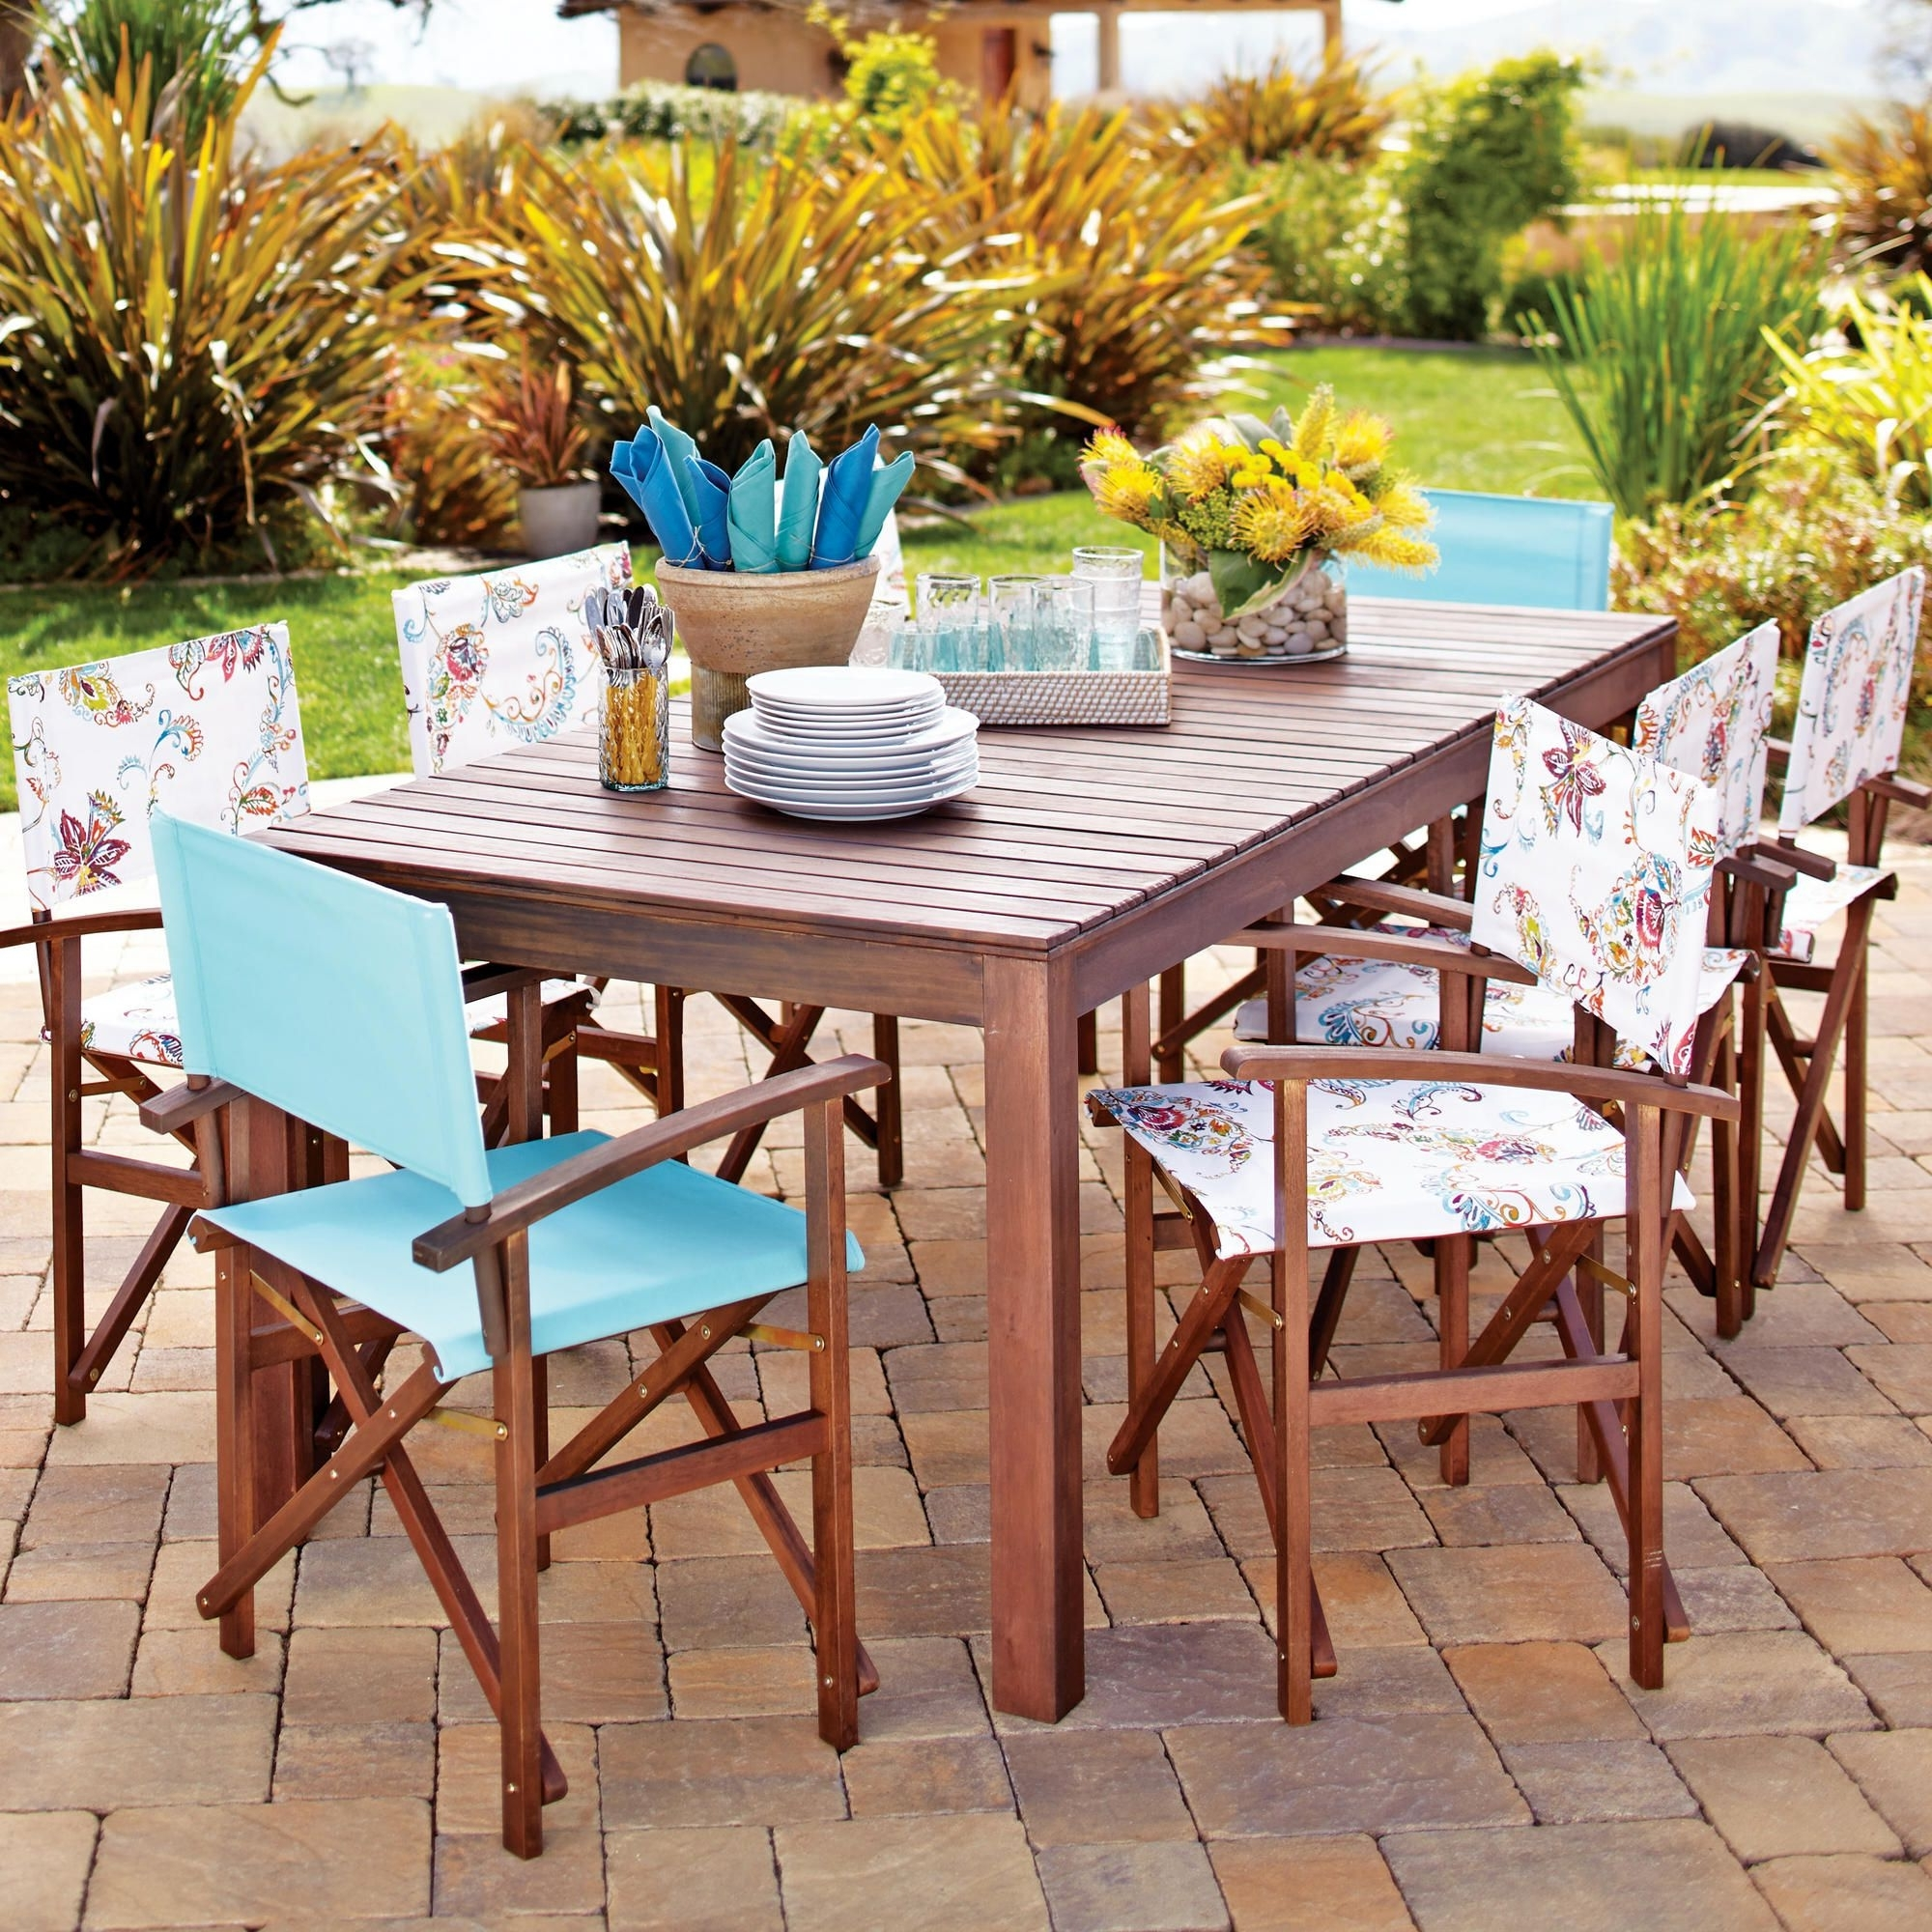 Home Style Throughout Well Known Bali Dining Sets (Gallery 23 of 25)